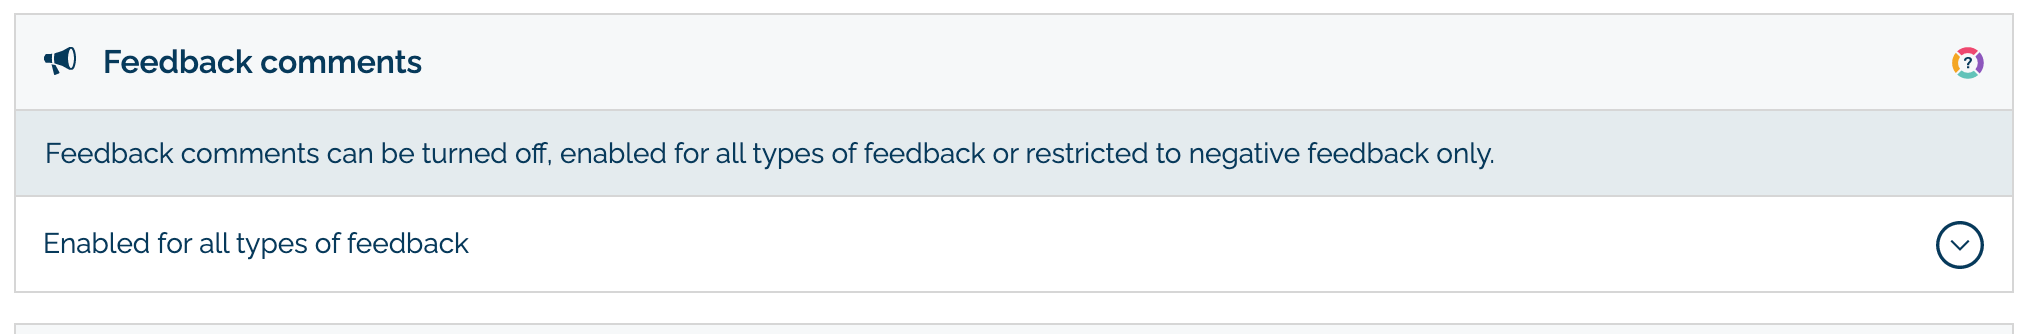 Feedback comment setting in MyMalcolm